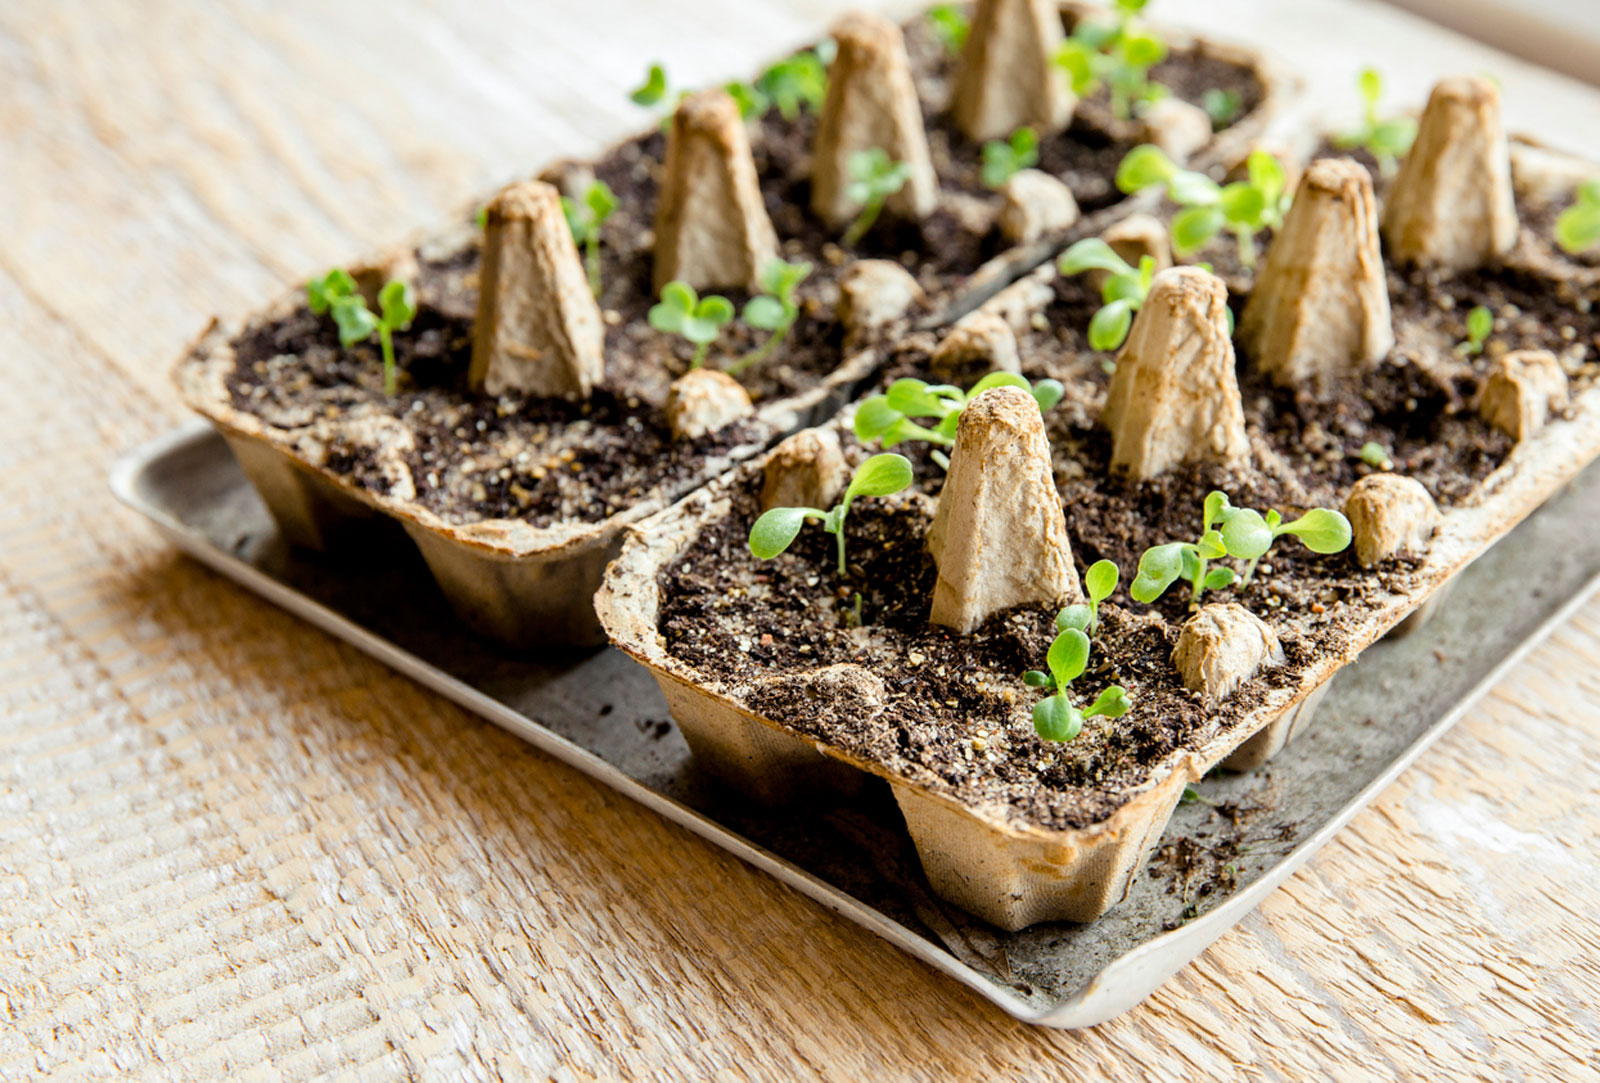 Starting Seeds In An Egg Carton – How To Use Egg Cartons For Seeds